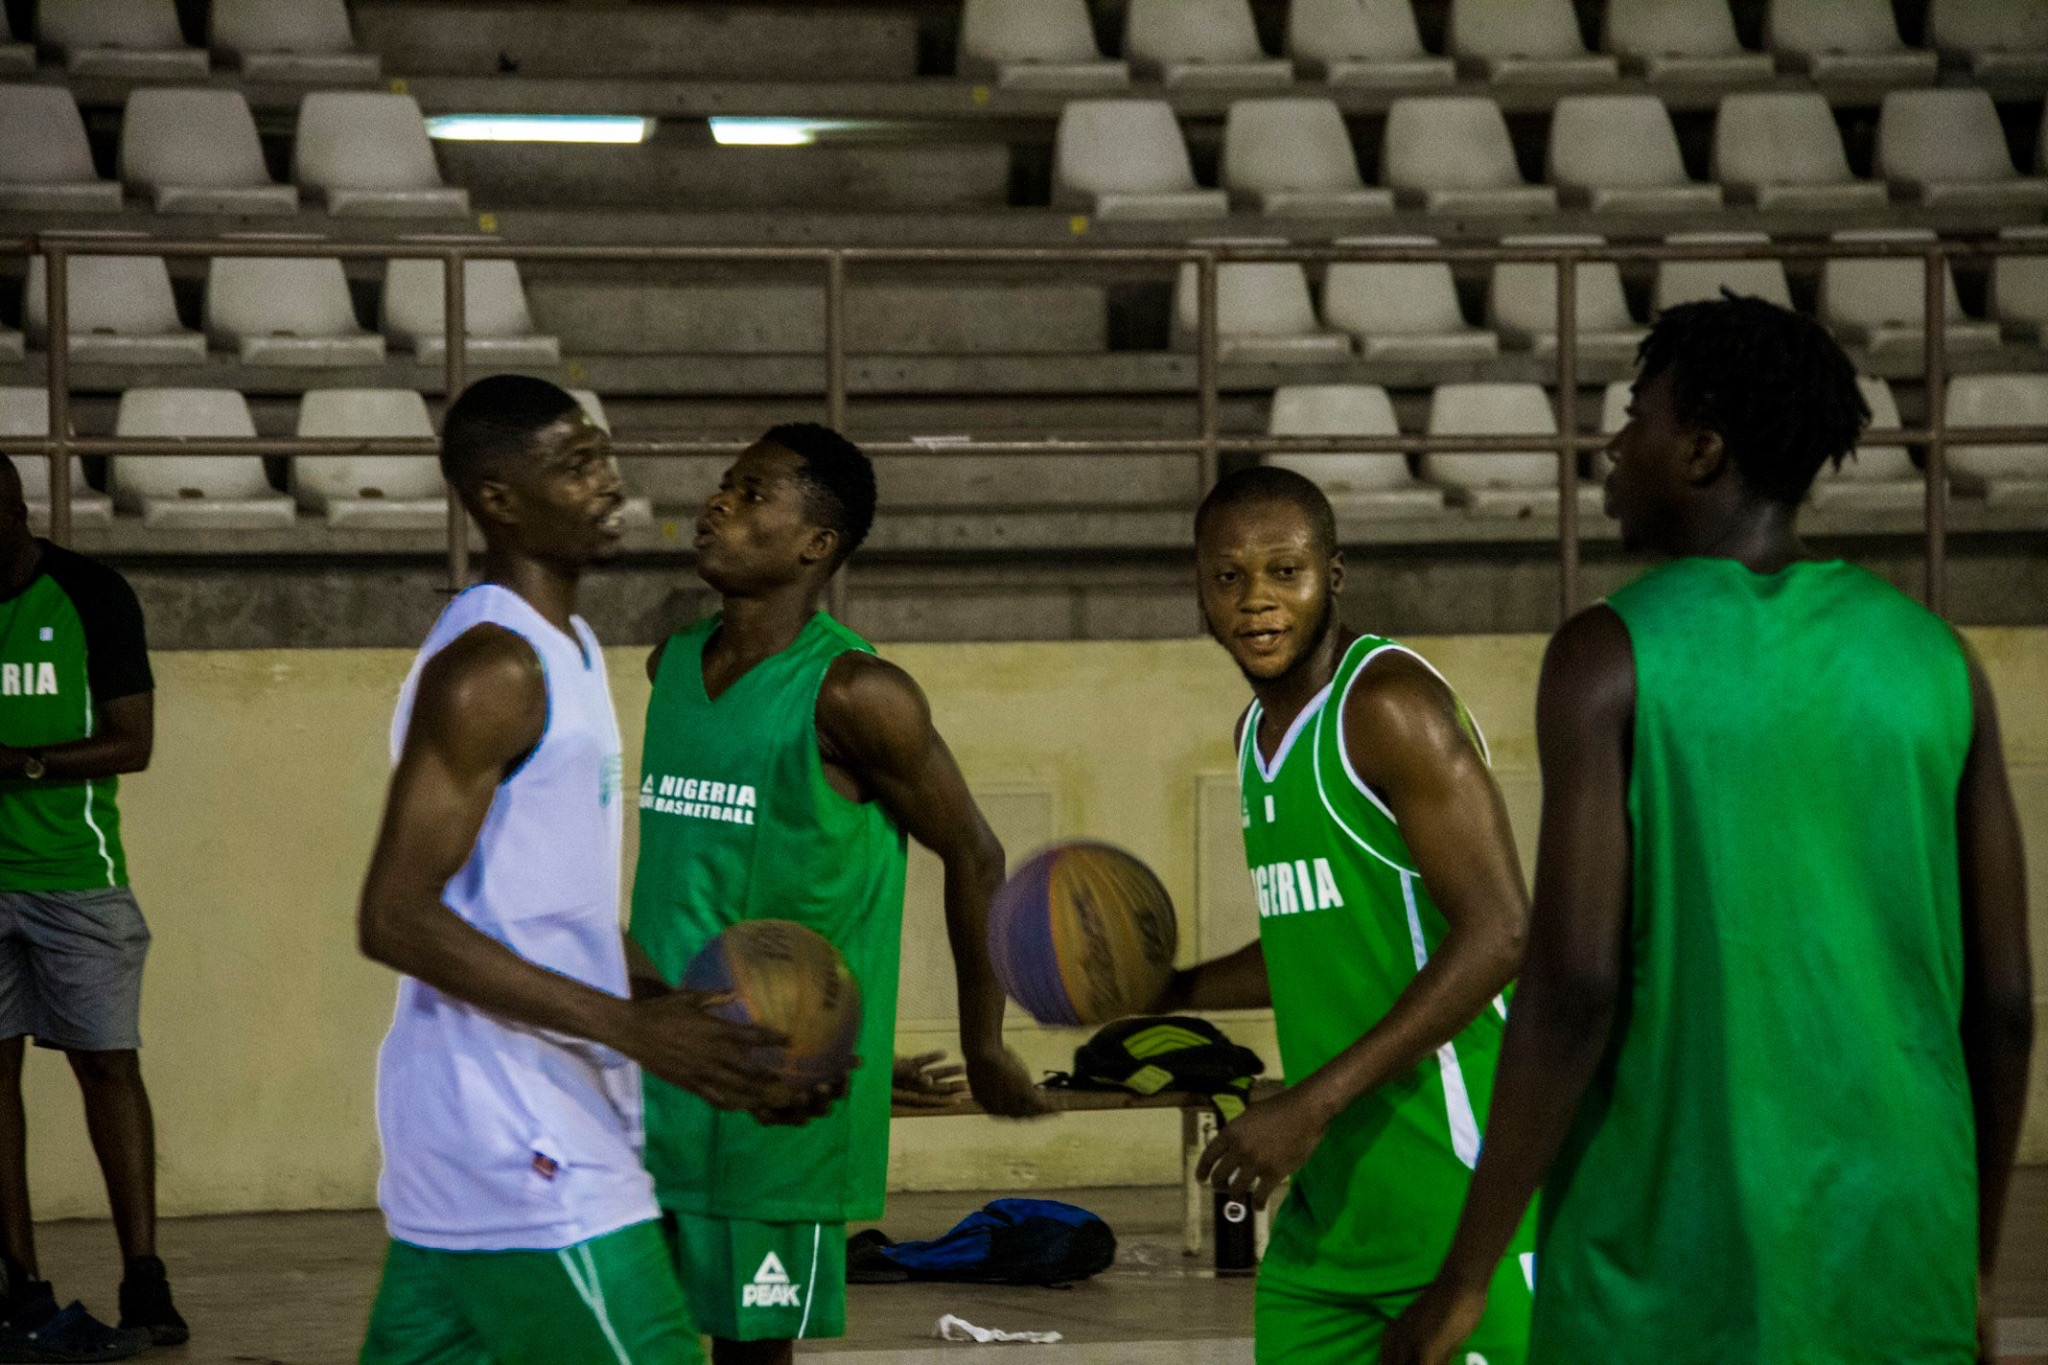 388846D2 FE3F 4983 946B B0E9E4958D76 - Nigeria begin campaign in FIBA 3×3 Africa Cup with wins in 4 categories